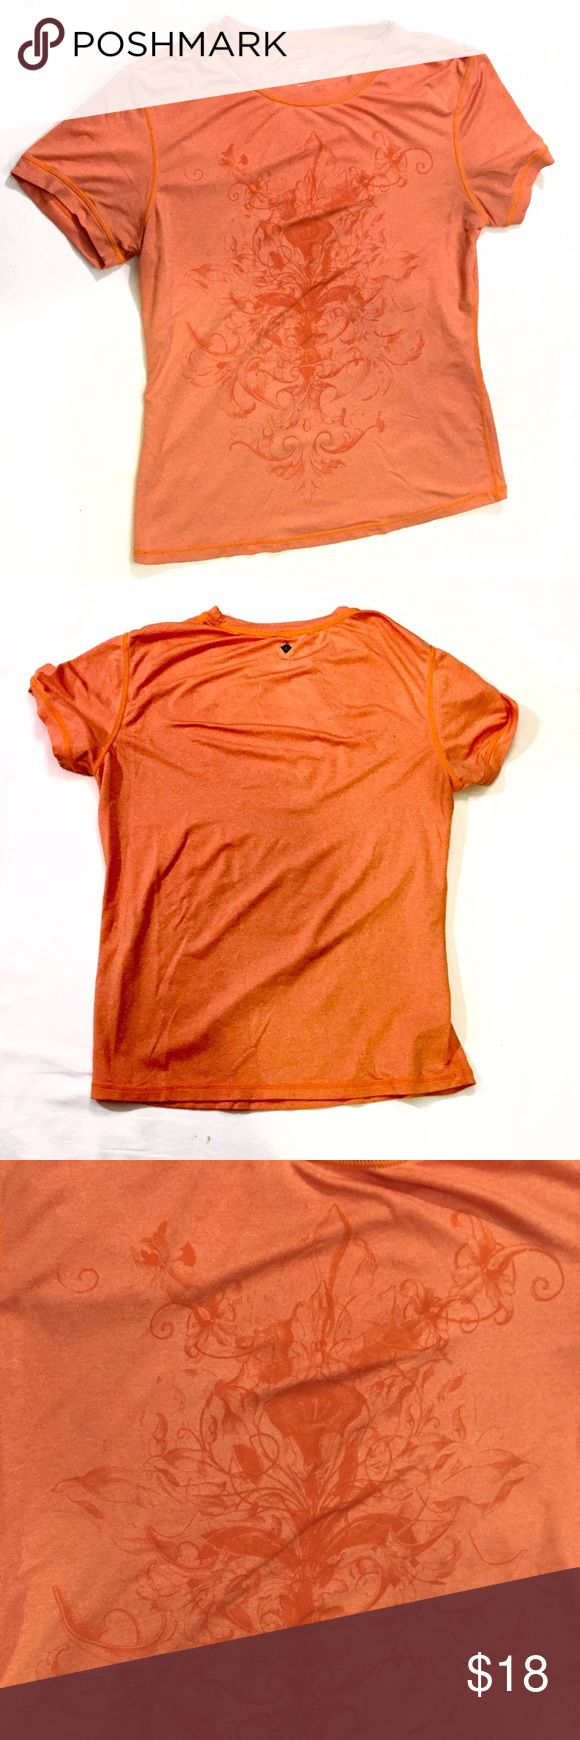 Prana Fitness Top Short Sleeve Orange Size Medium Prana Fitness Top Short Sleeve Orange Size Medium.  Tone on tone lily print.  Gently worn, there is a small mark on the shoulder as seen in photo #4. Prana Tops Tees - Short Sleeve